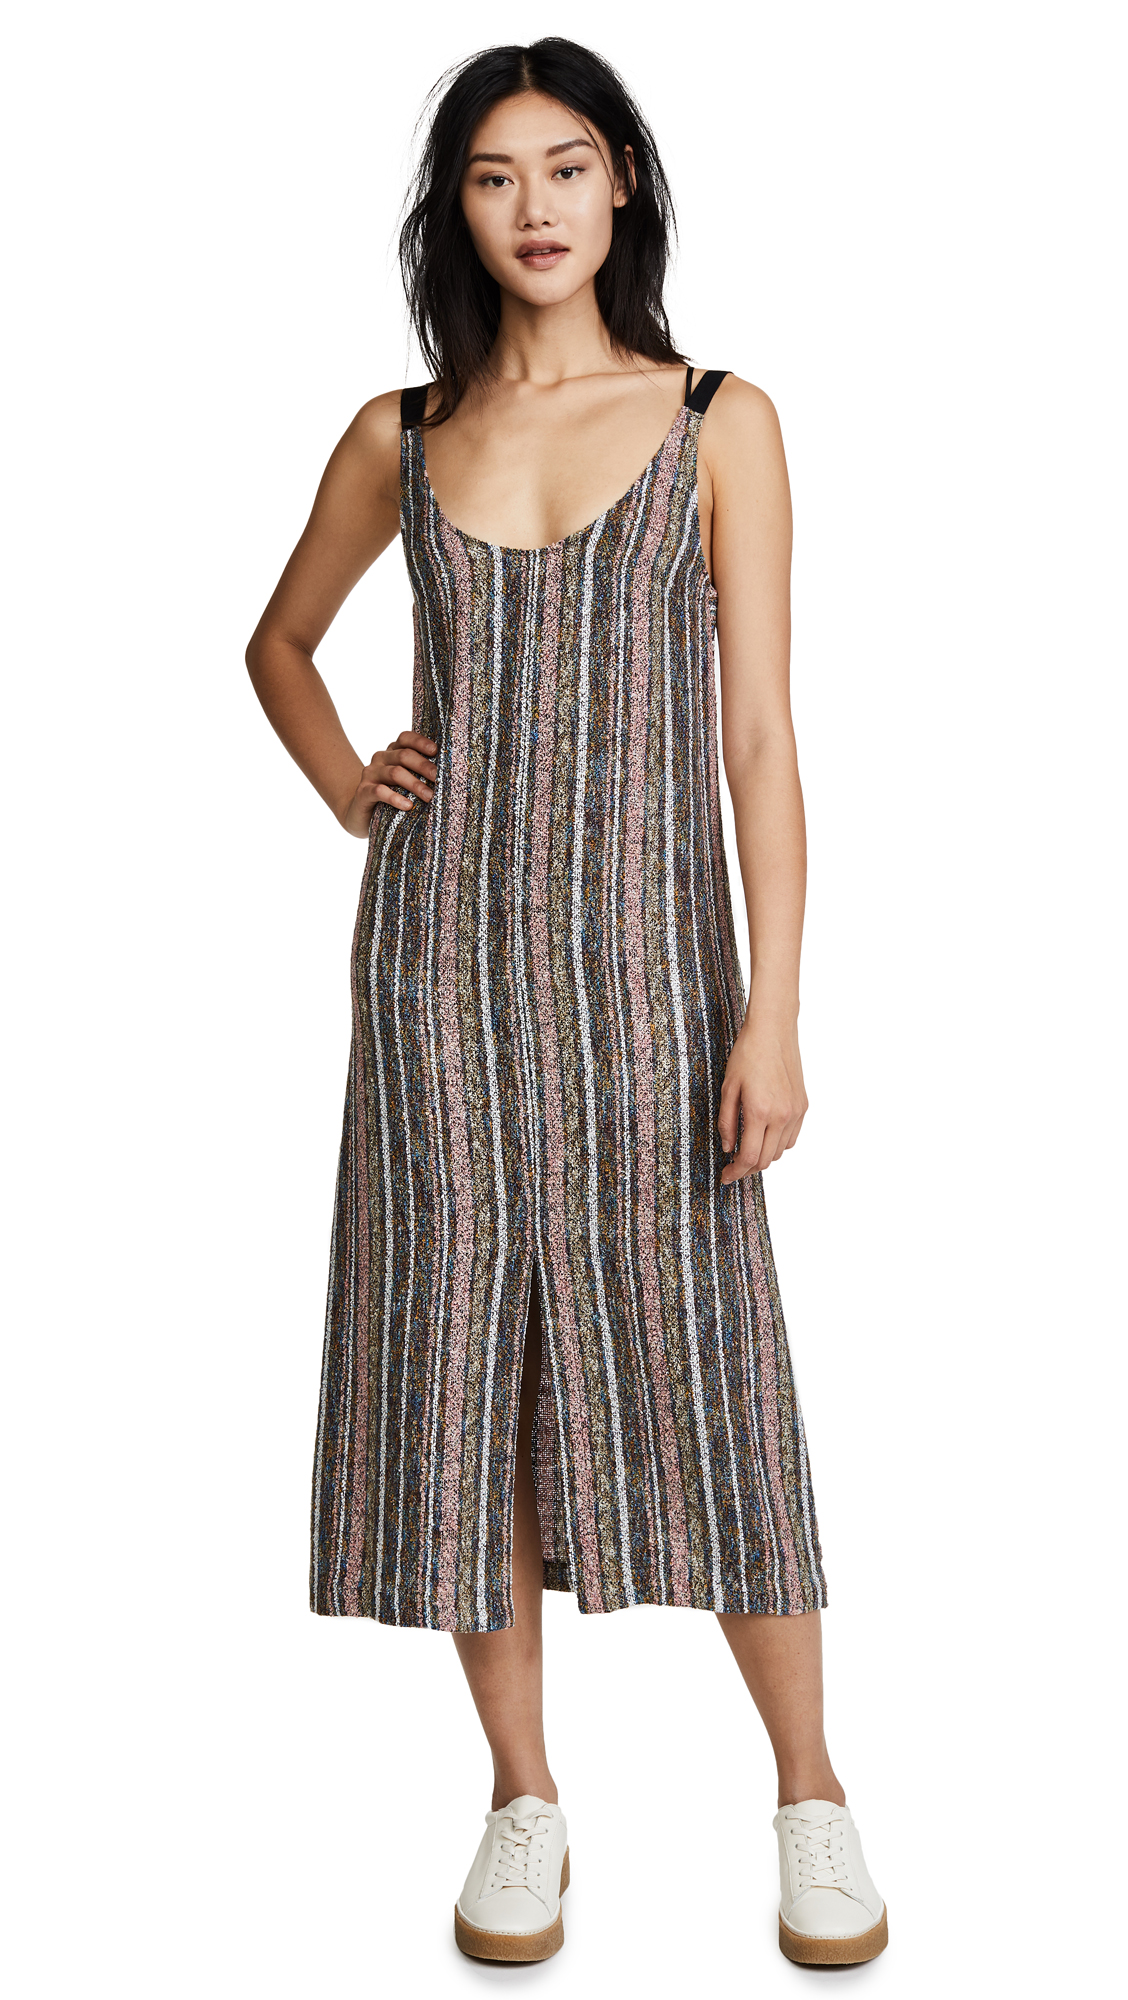 Rachel Comey Brume Dress - Multi Stripe Leno